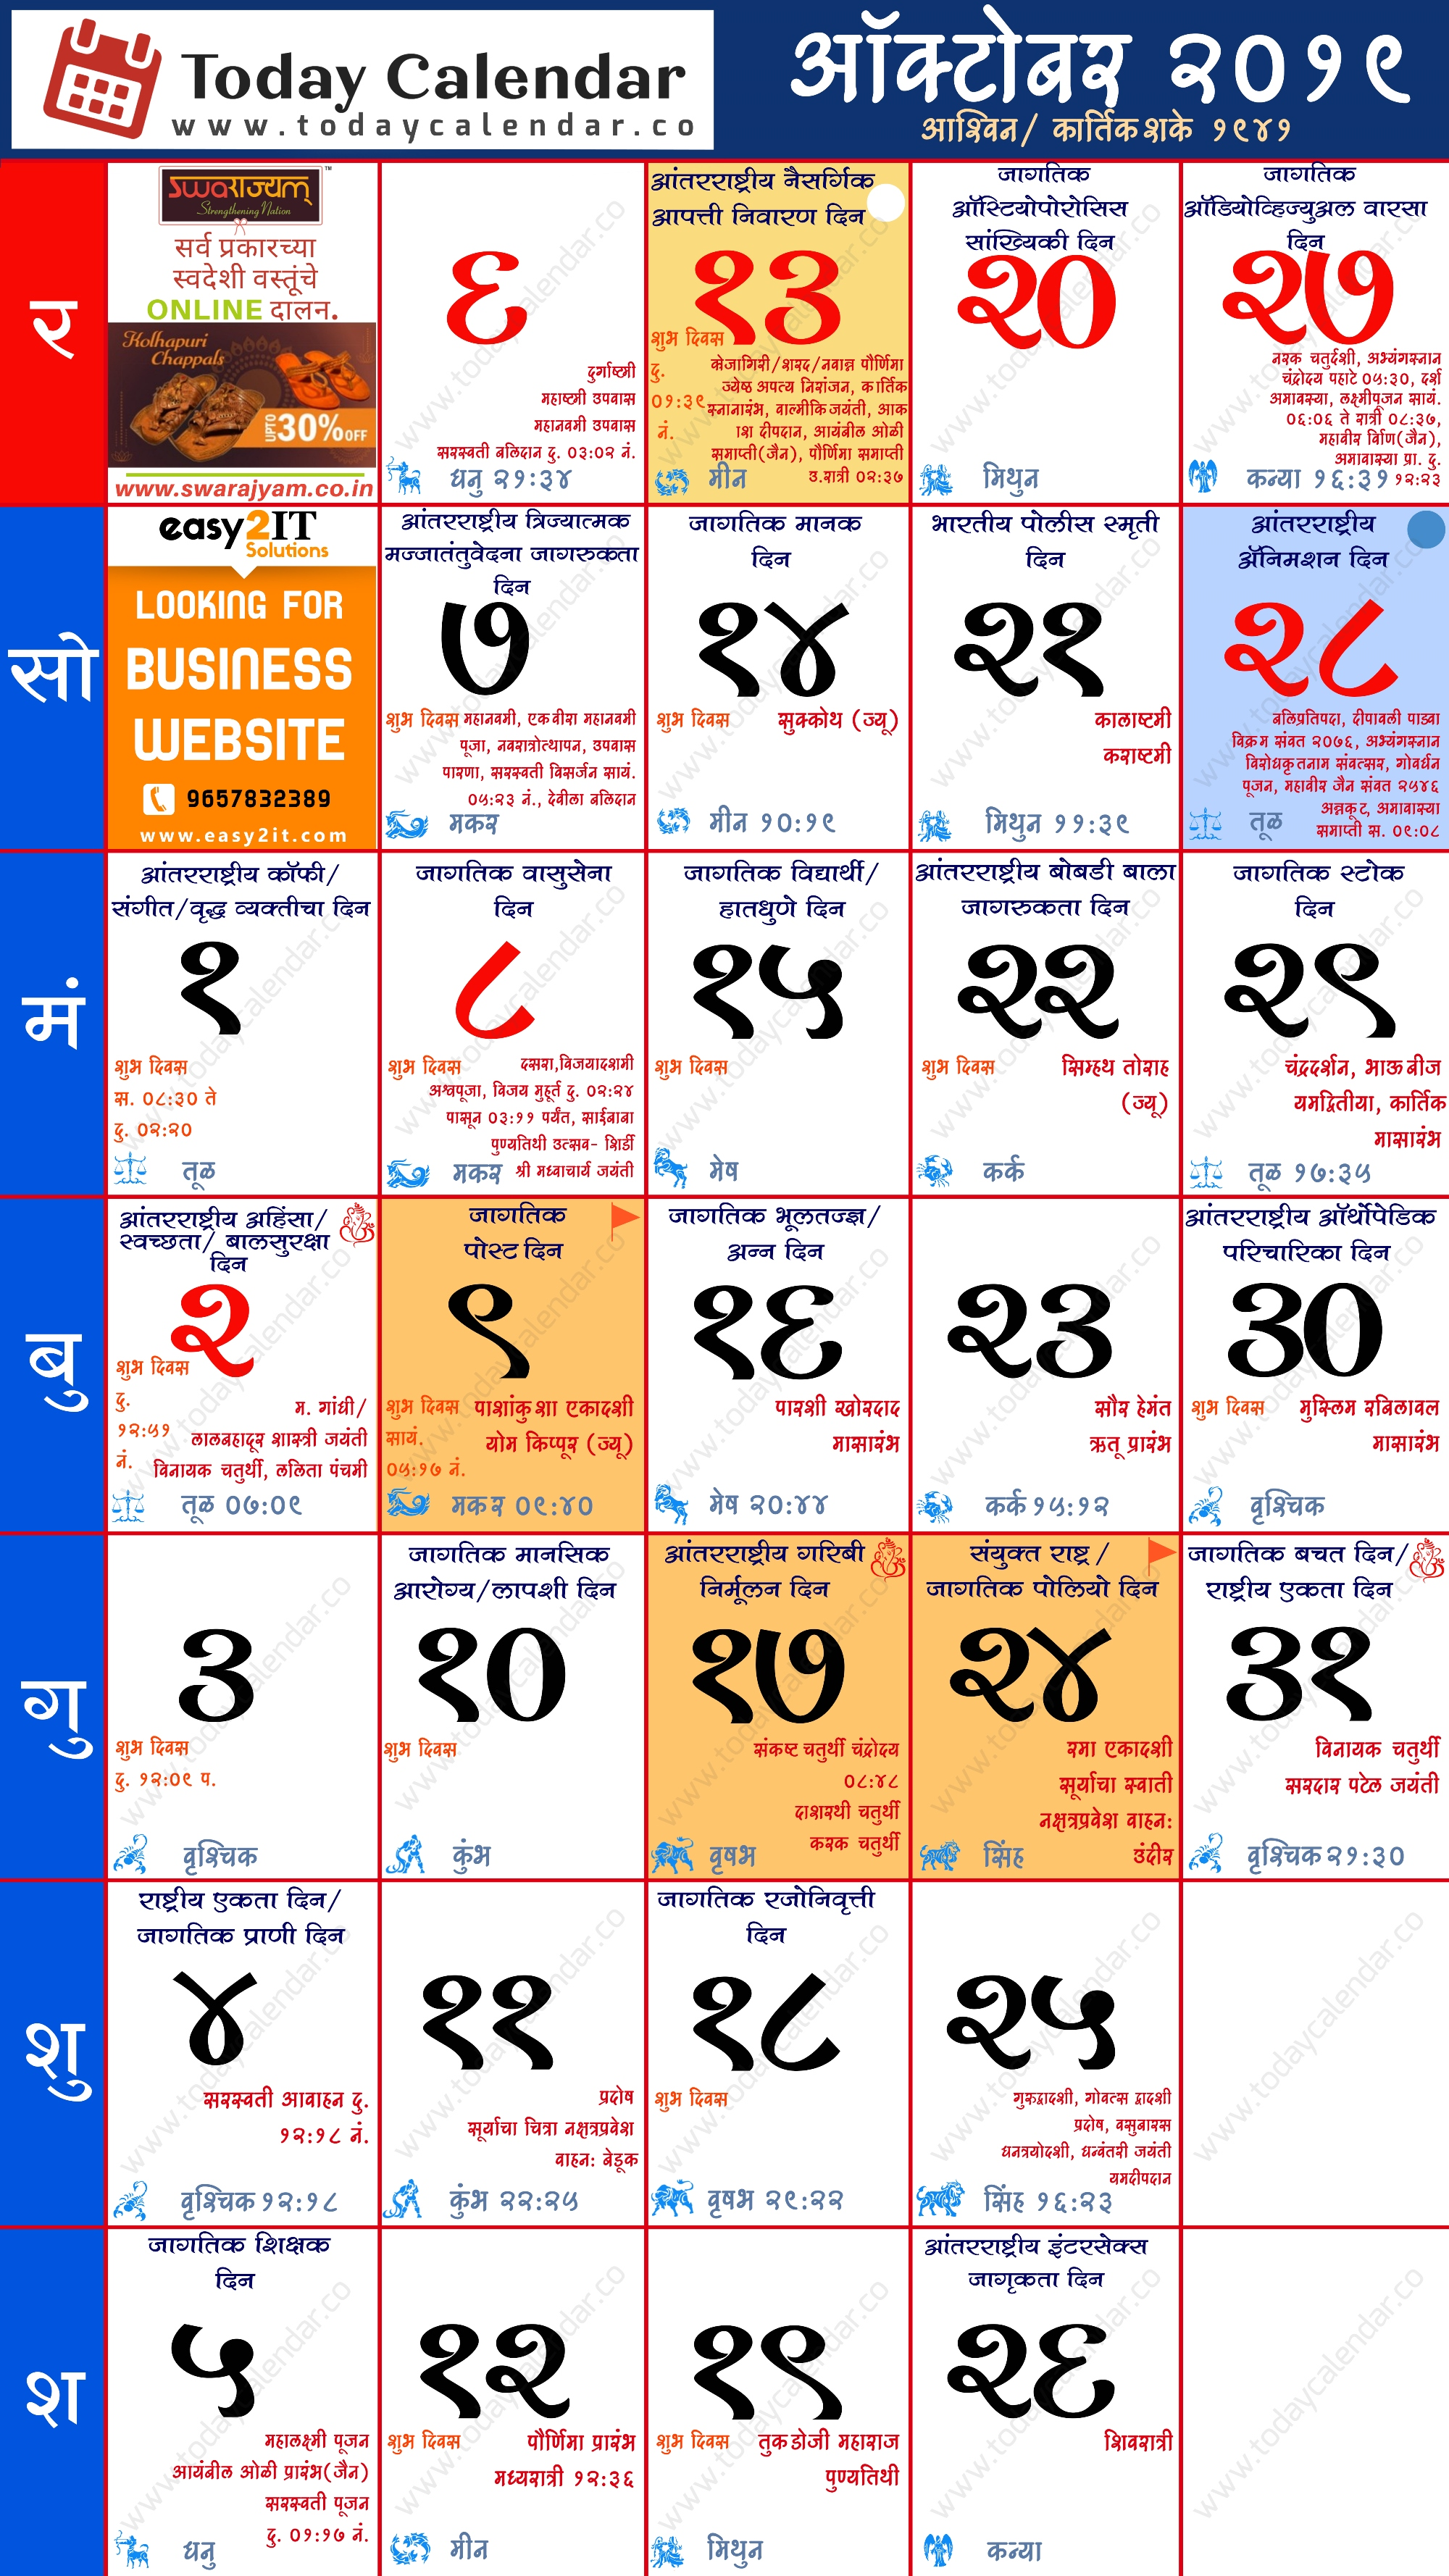 October marathi calendar 2019 todaycalendar